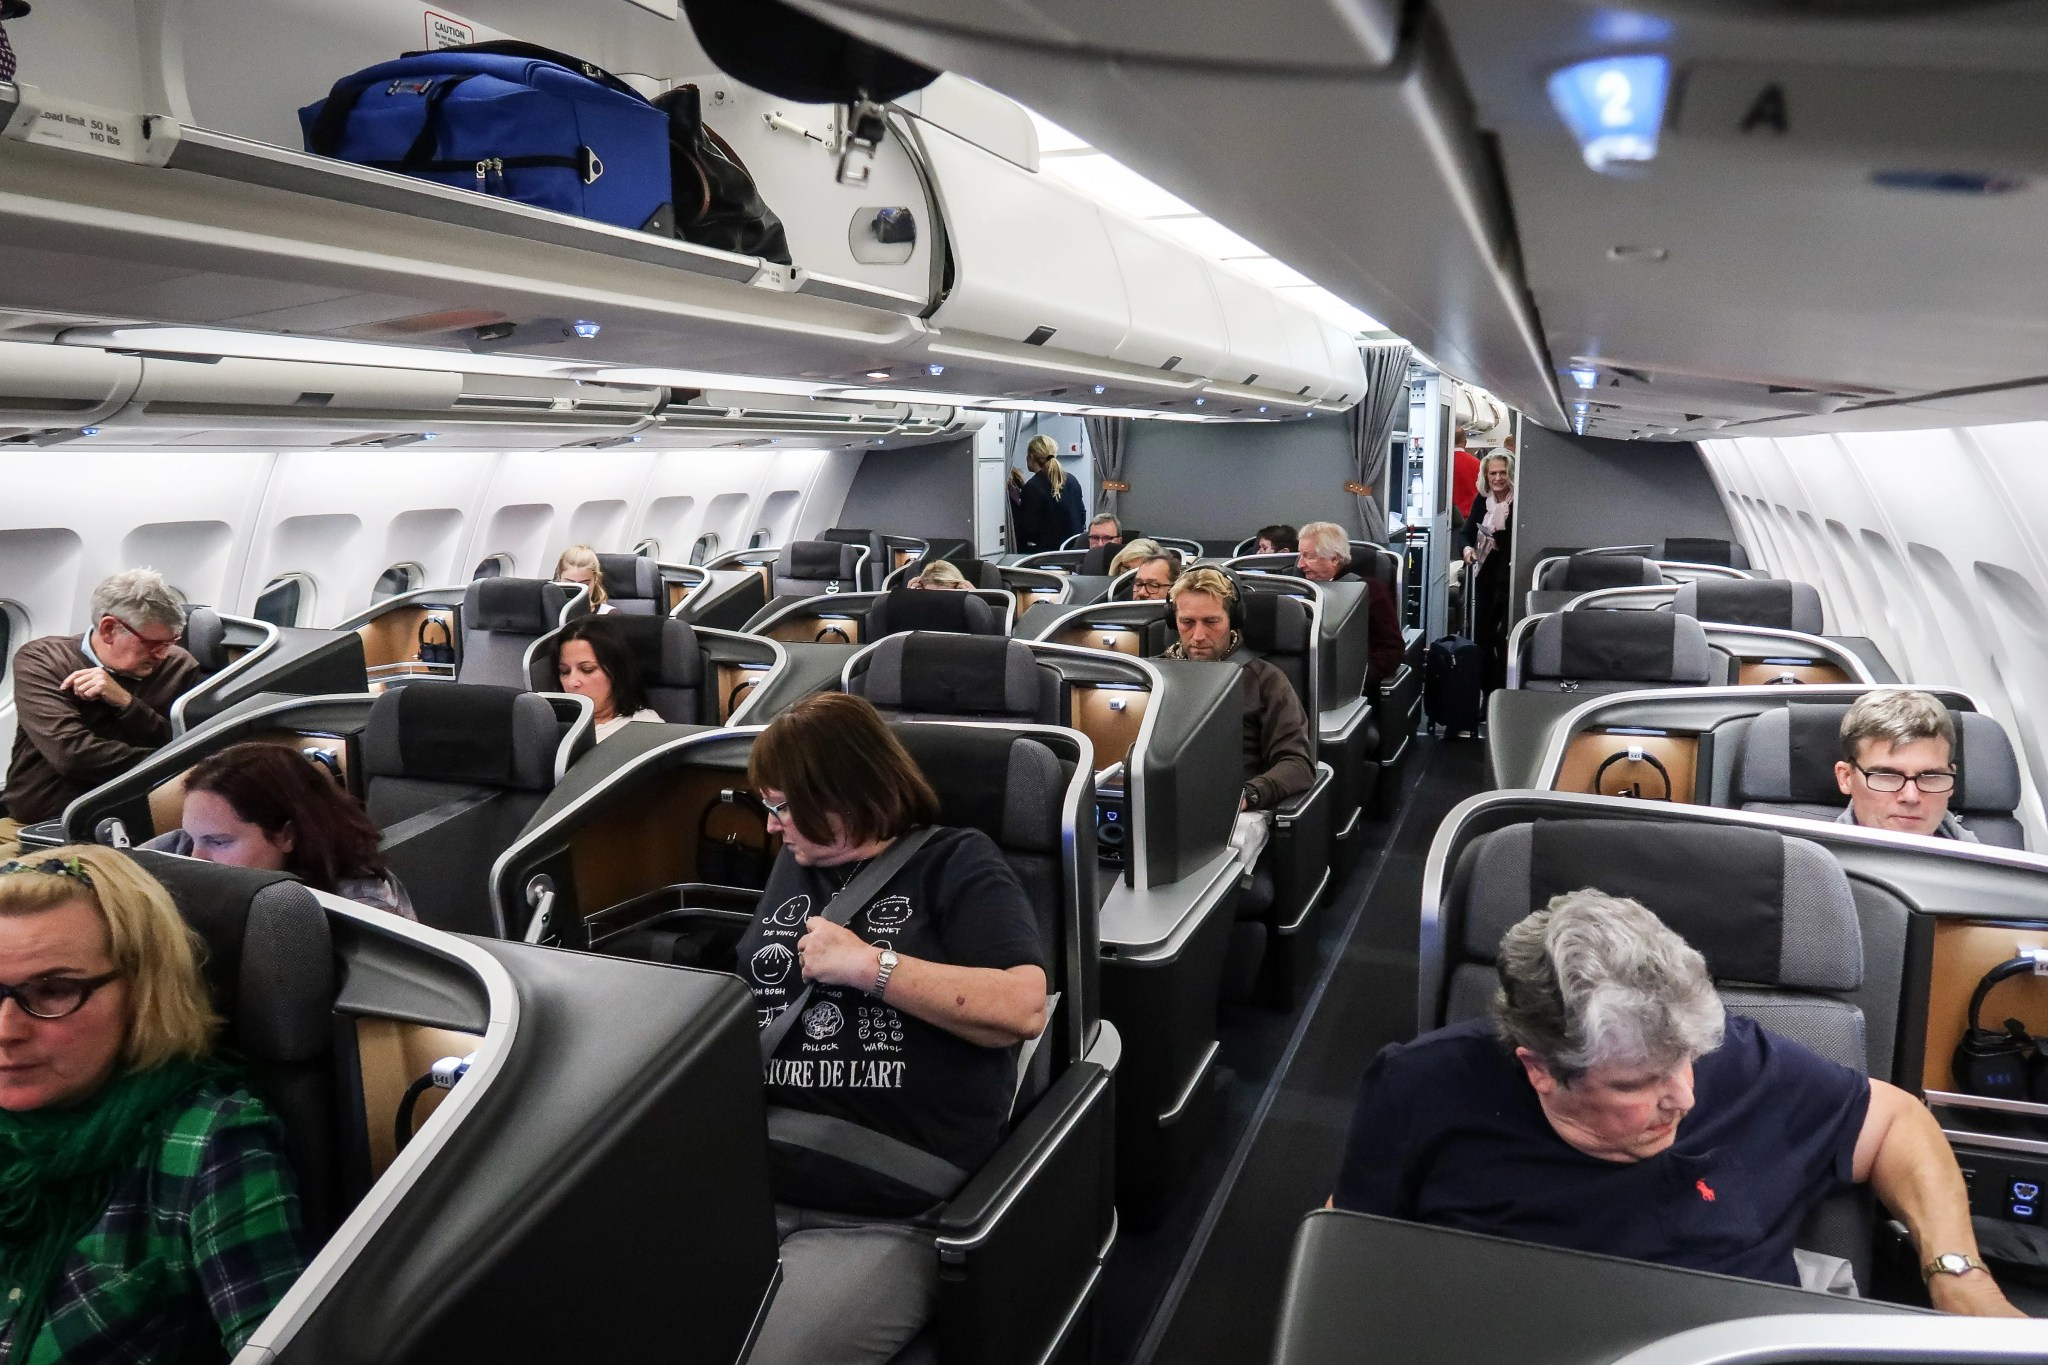 Review Sas Business Class On The A330 From Newark To